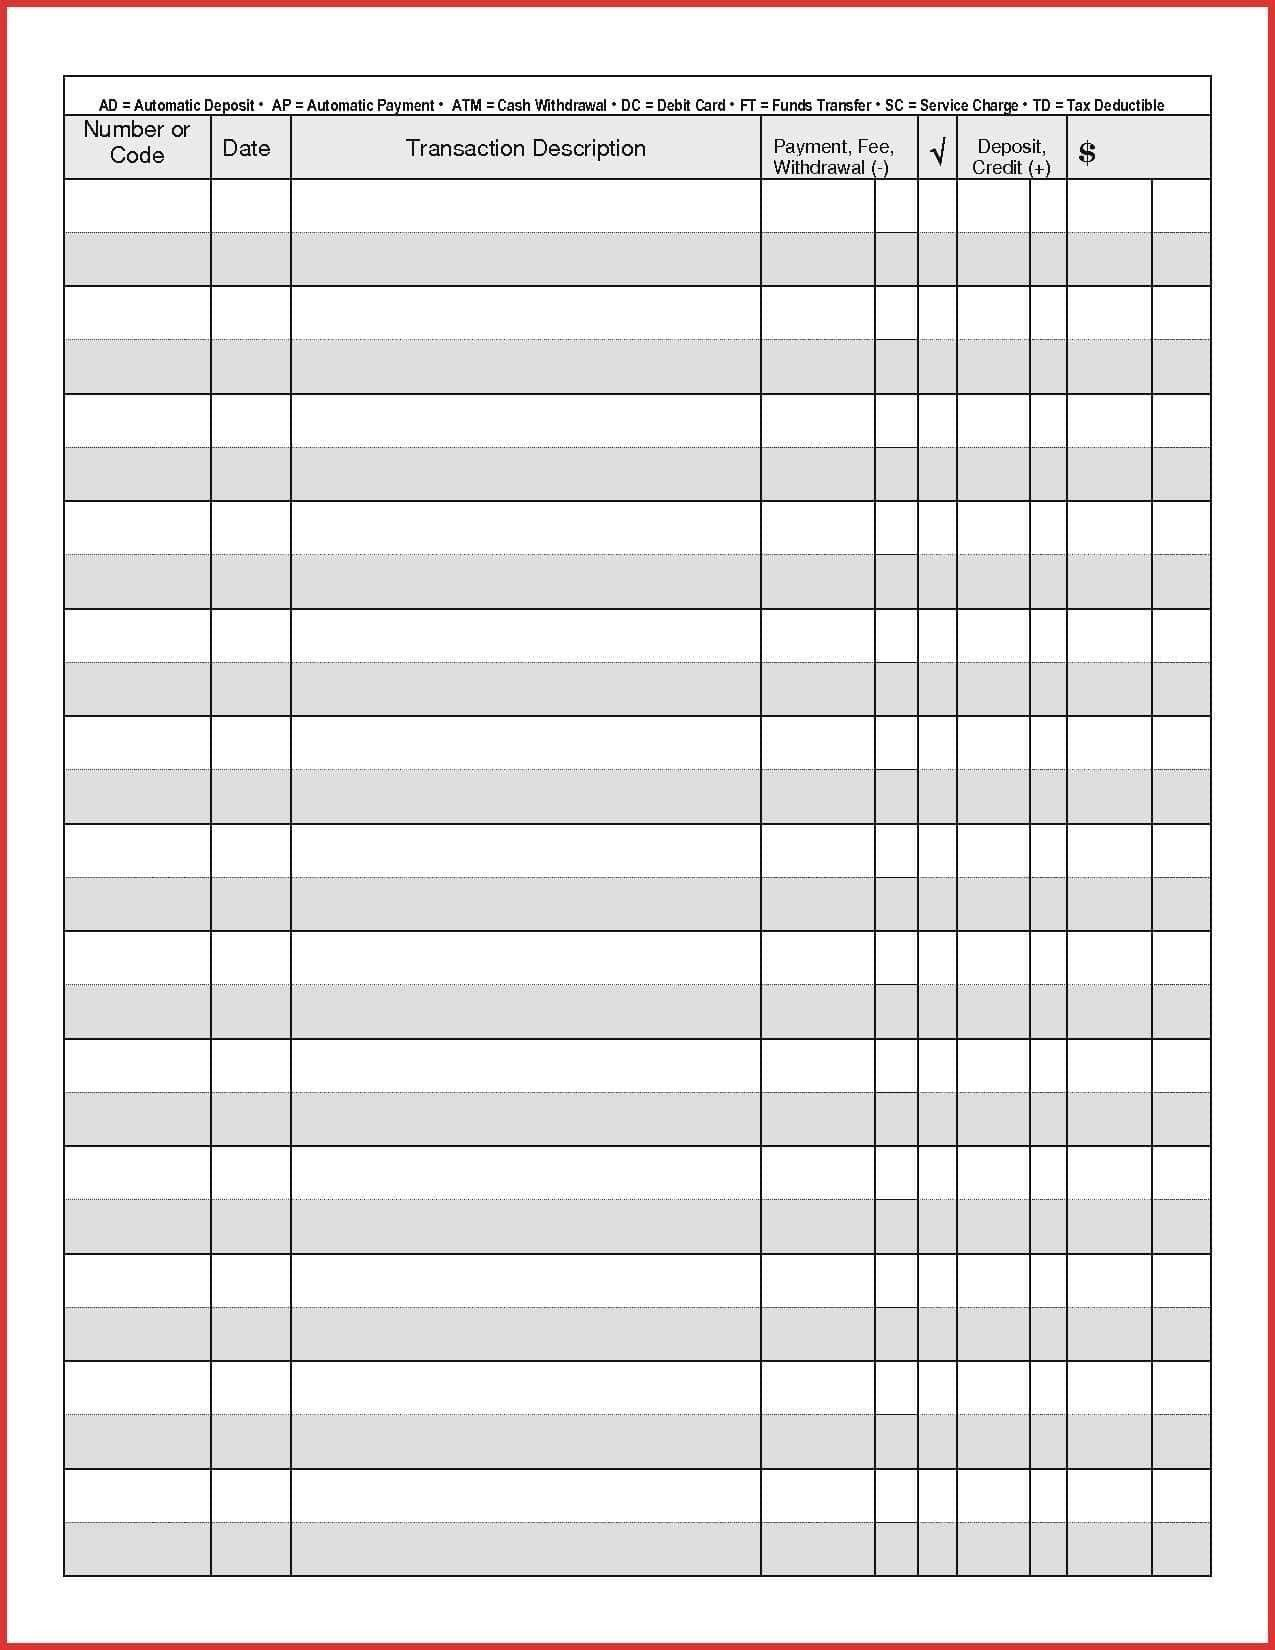 000 Outstanding Checkbook Register Template Excel Highest Clarity  Check 2007 Balance 2003Full